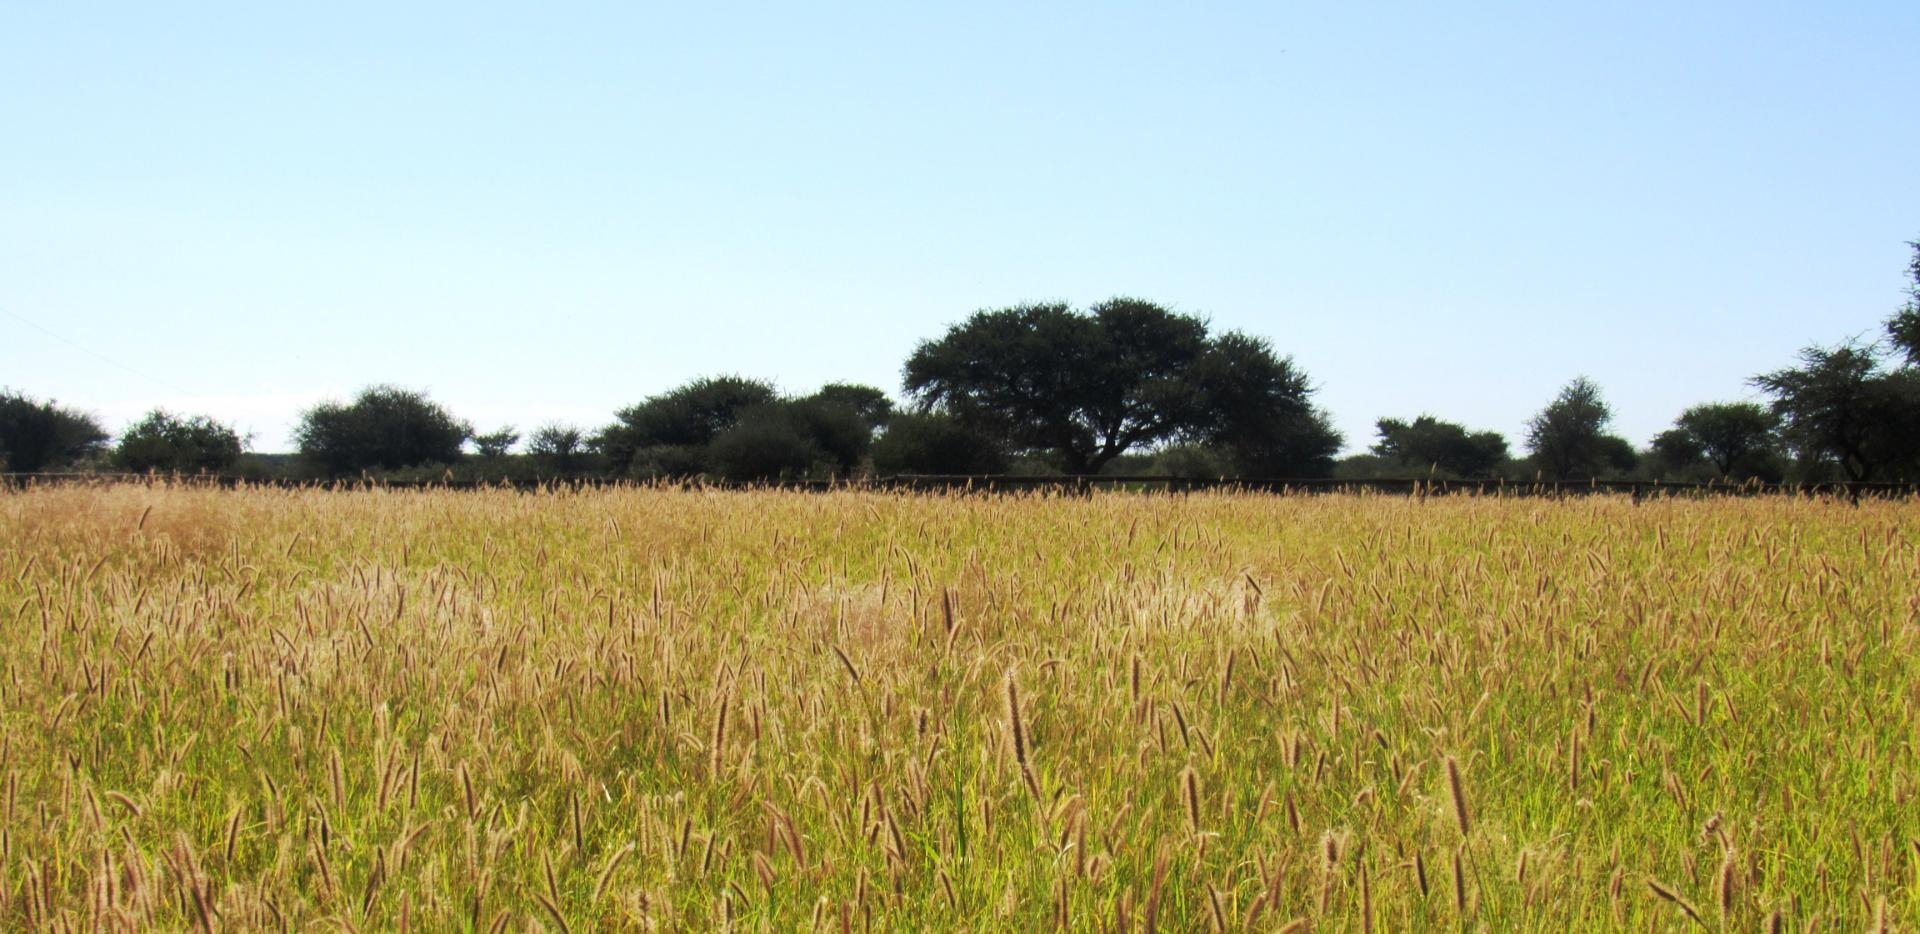 Bloubuffe cultivated pastures